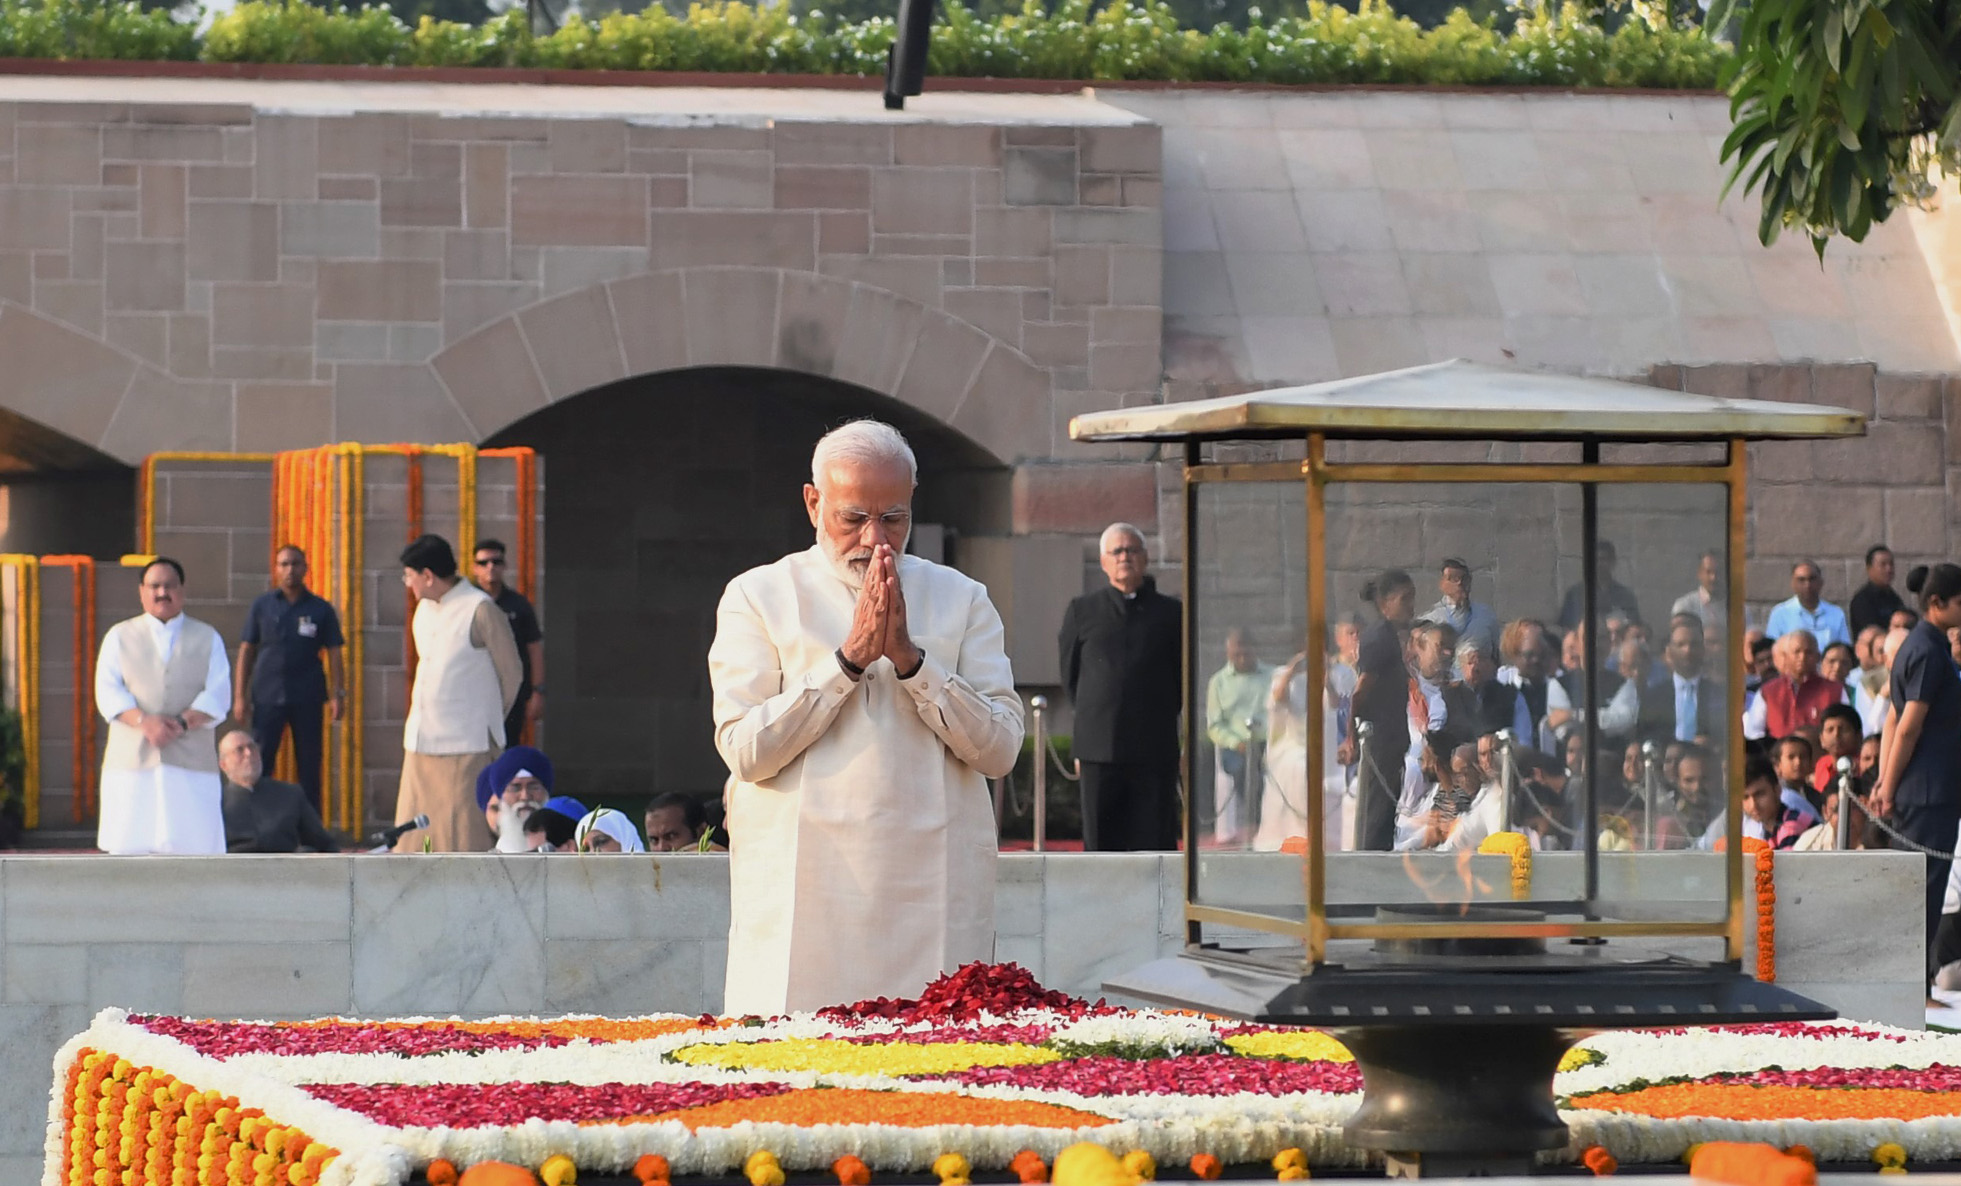 The Prime Minister, Shri Narendra Modi paying homage at the Samadhi of Mahatma Gandhi on his 150th birth anniversary, at Rajghat, in Delhi on October 02, 2019.